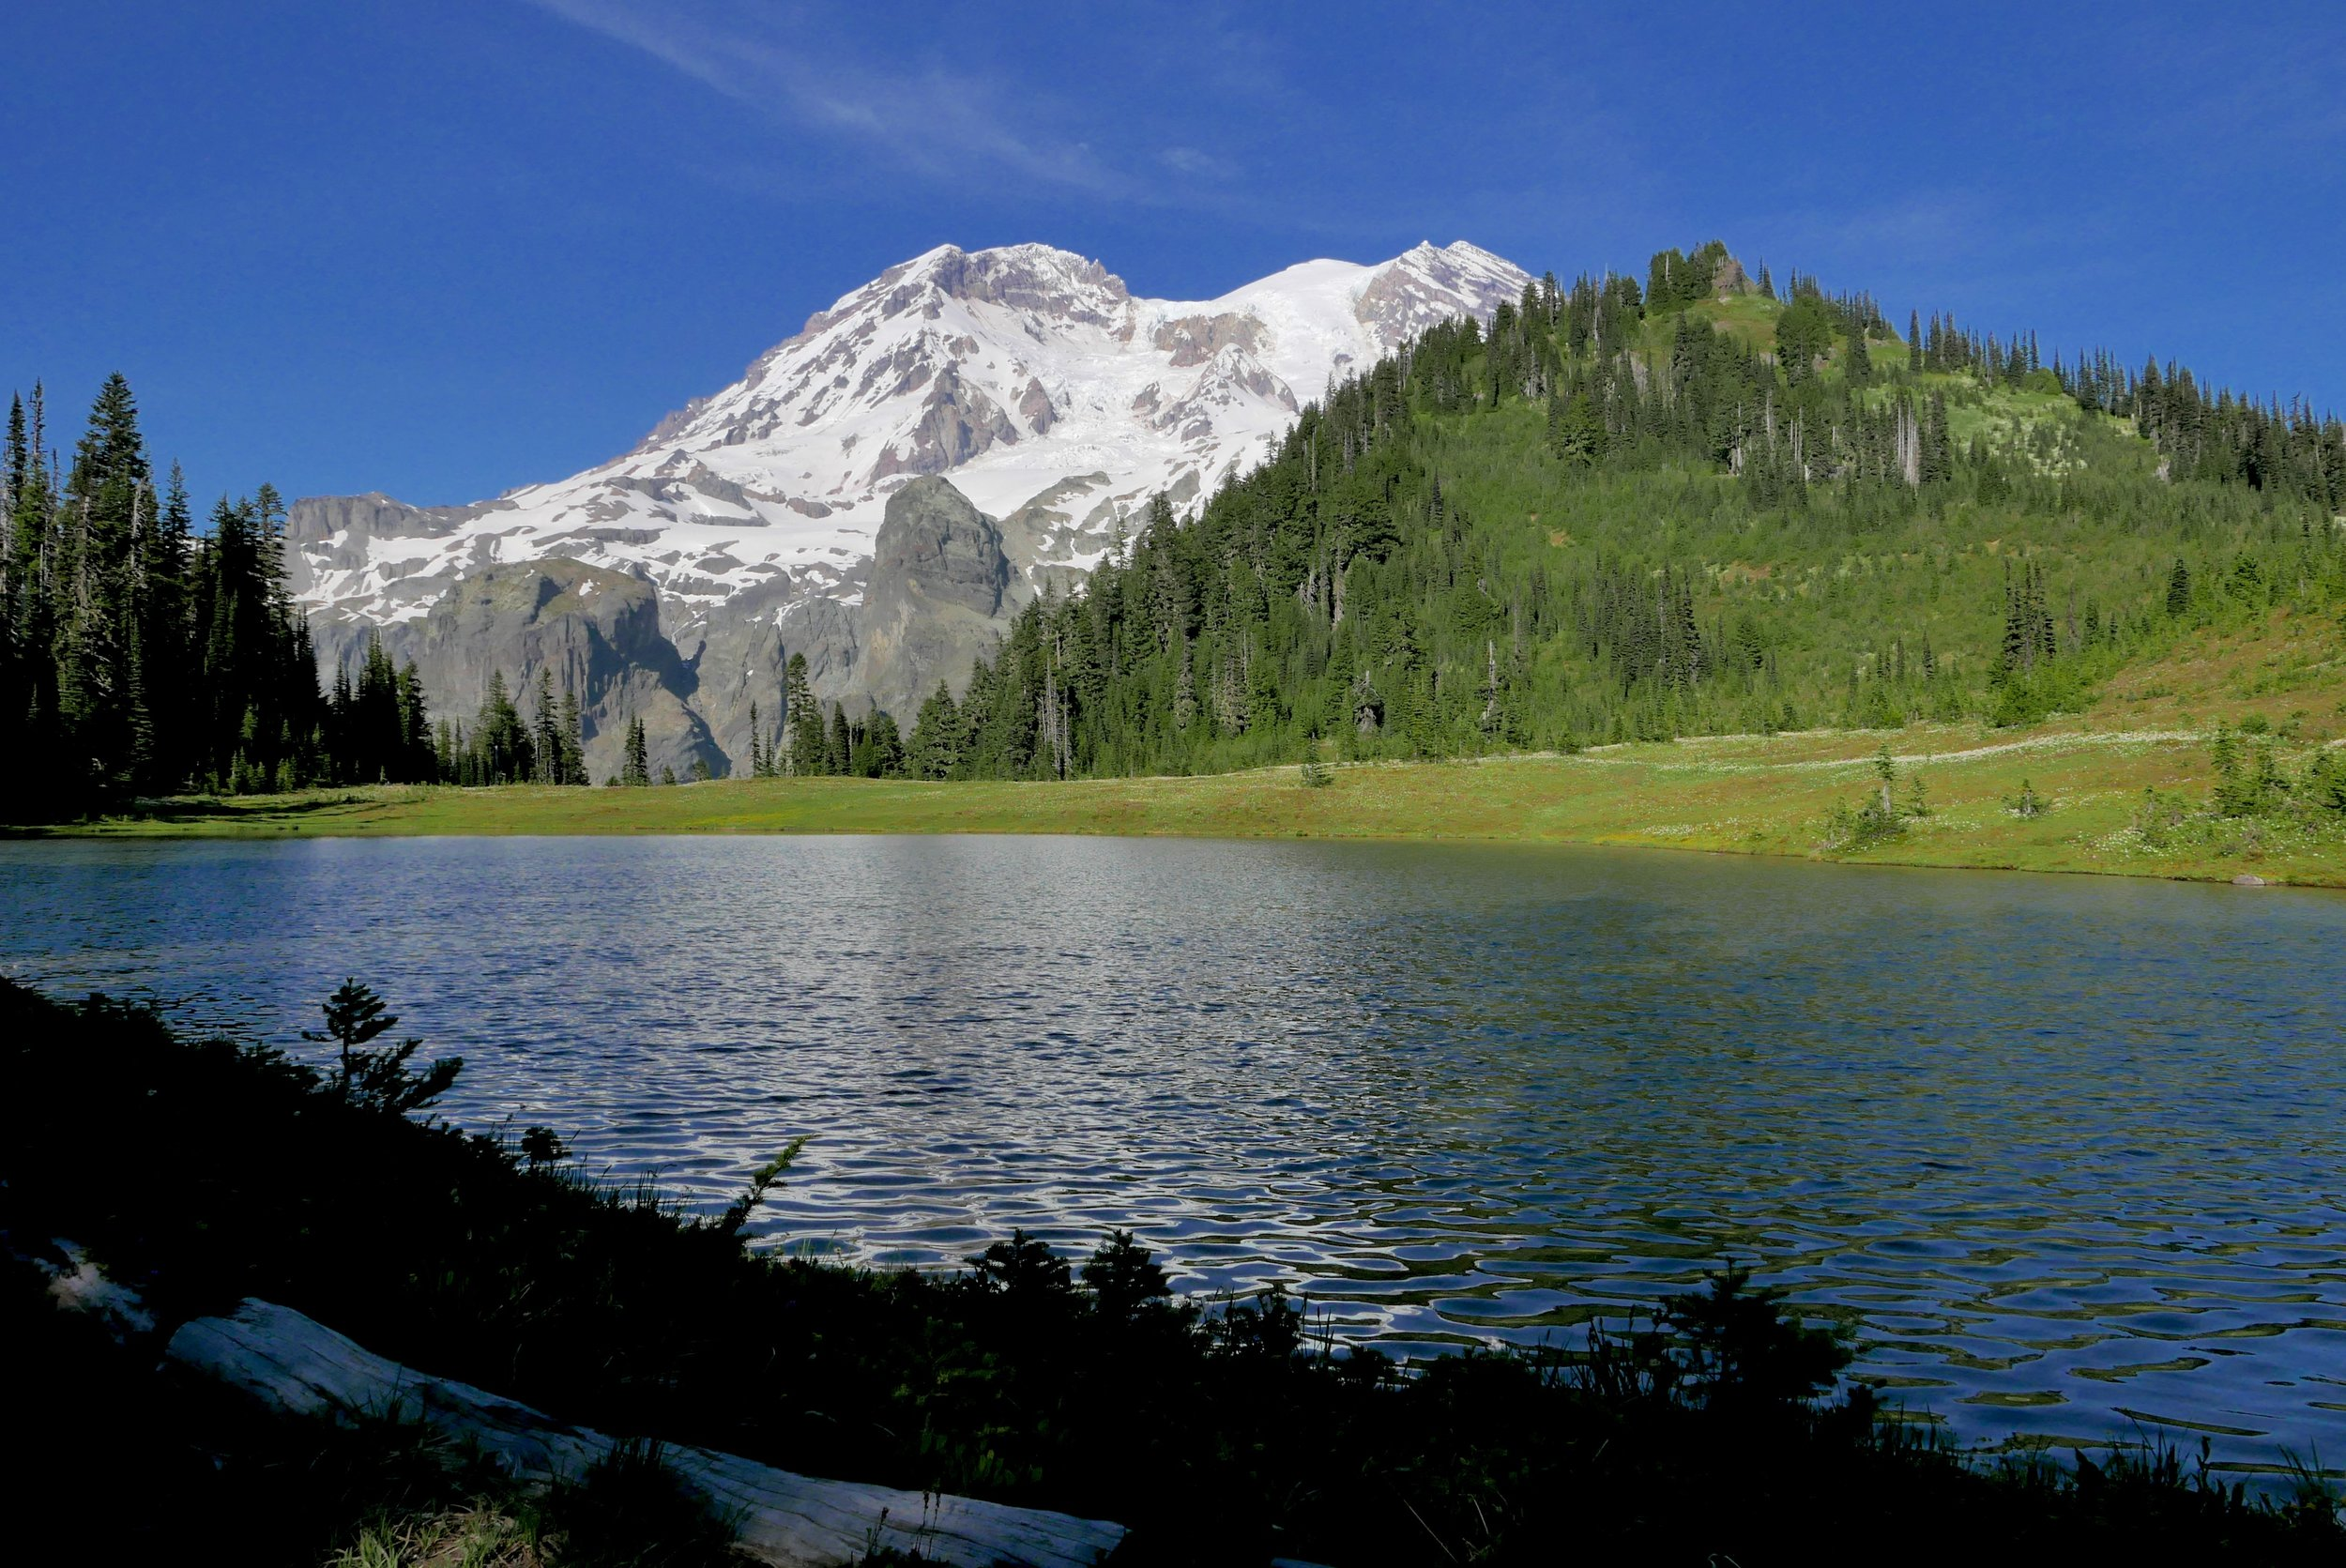 Klapatche Park (5500') and Aurora Lake  (June 9, 2015)